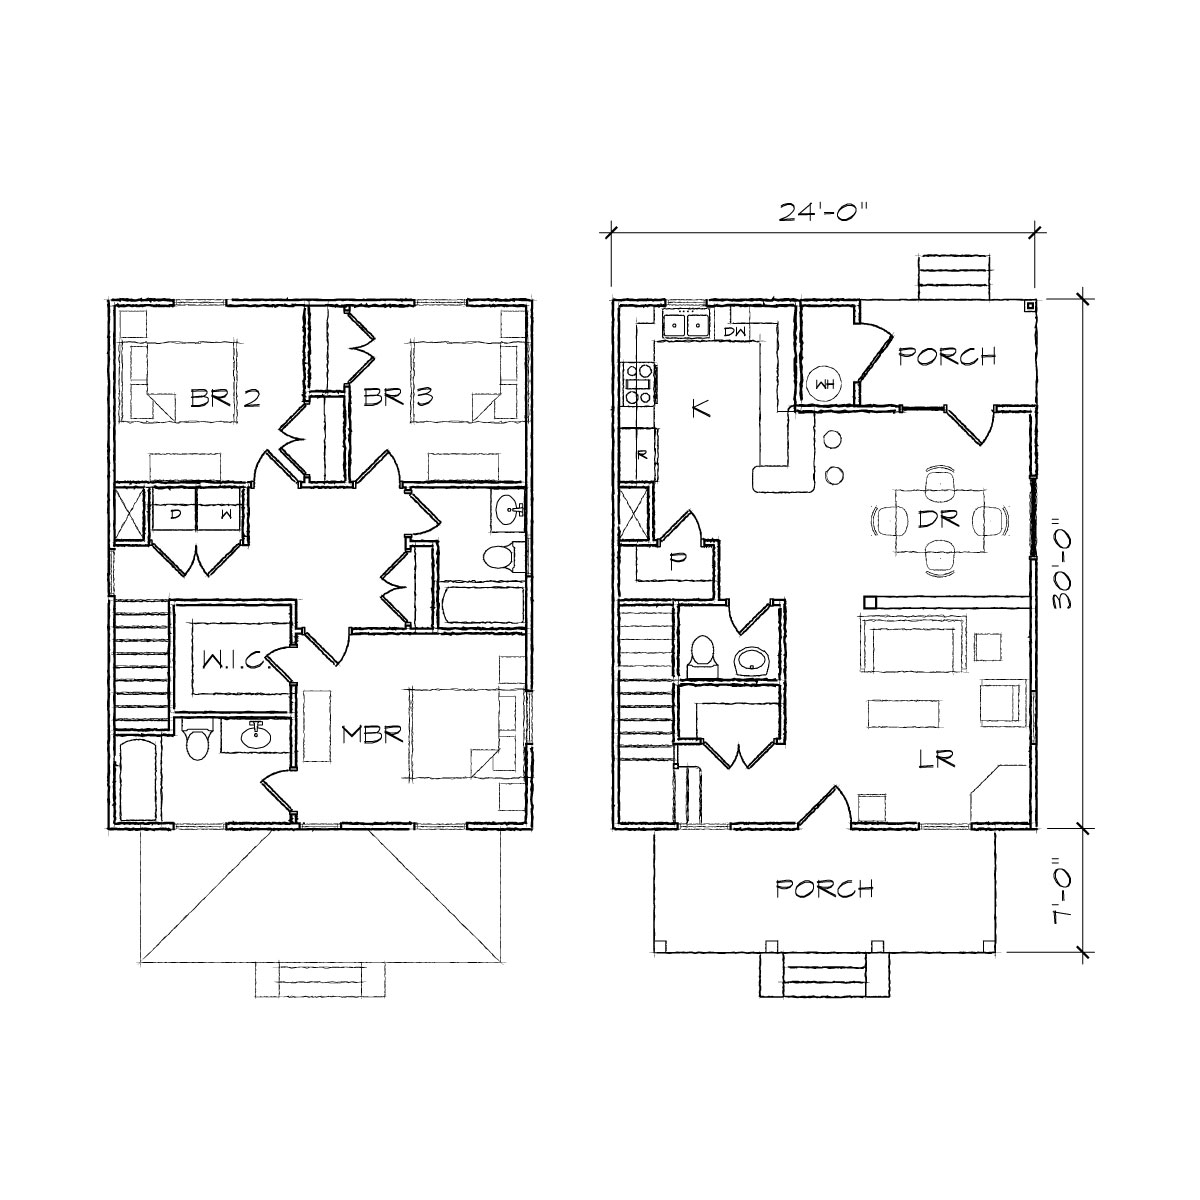 Simple square house plans simple square house floor plans for Modern foursquare house plans